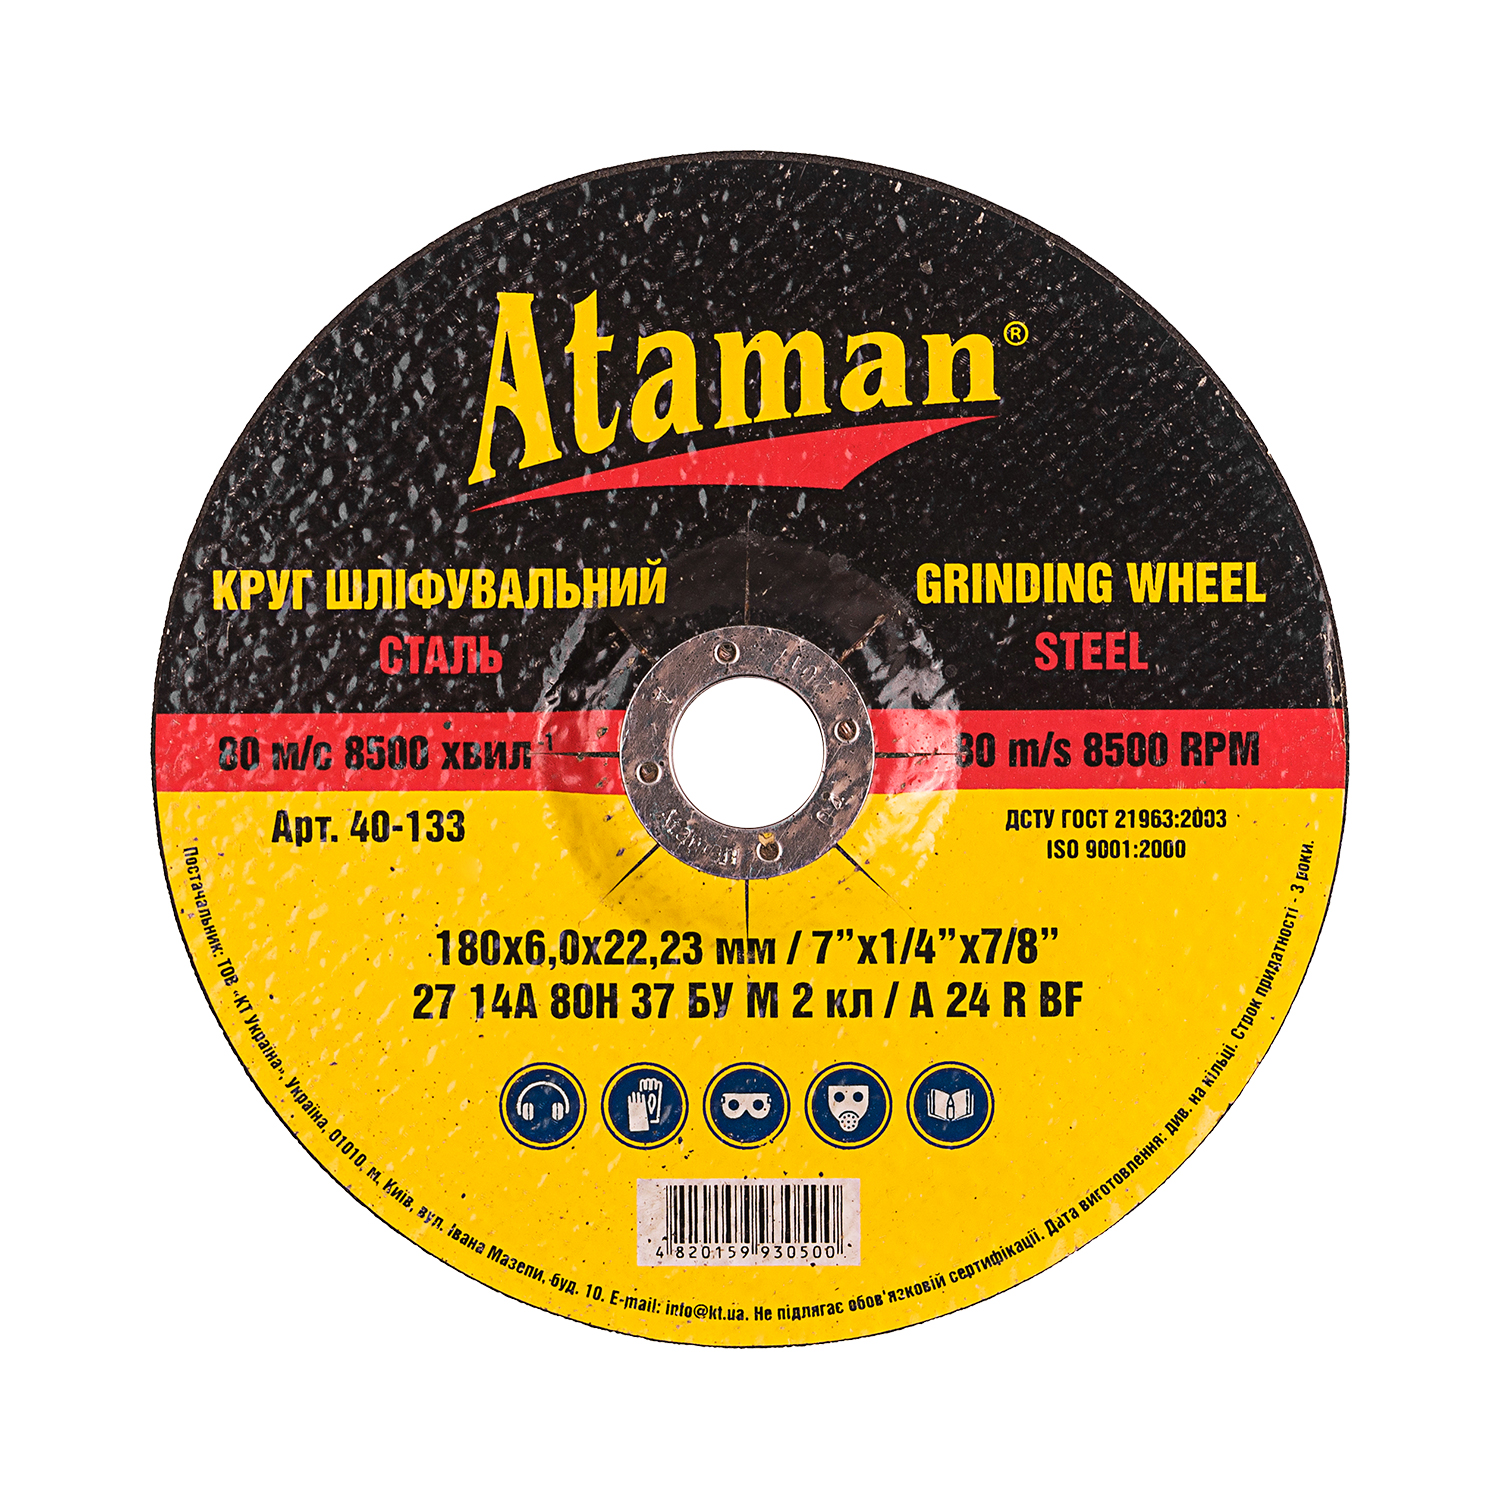 Grindings wheel for metal Ataman 27 14А 180х6.0х22.23